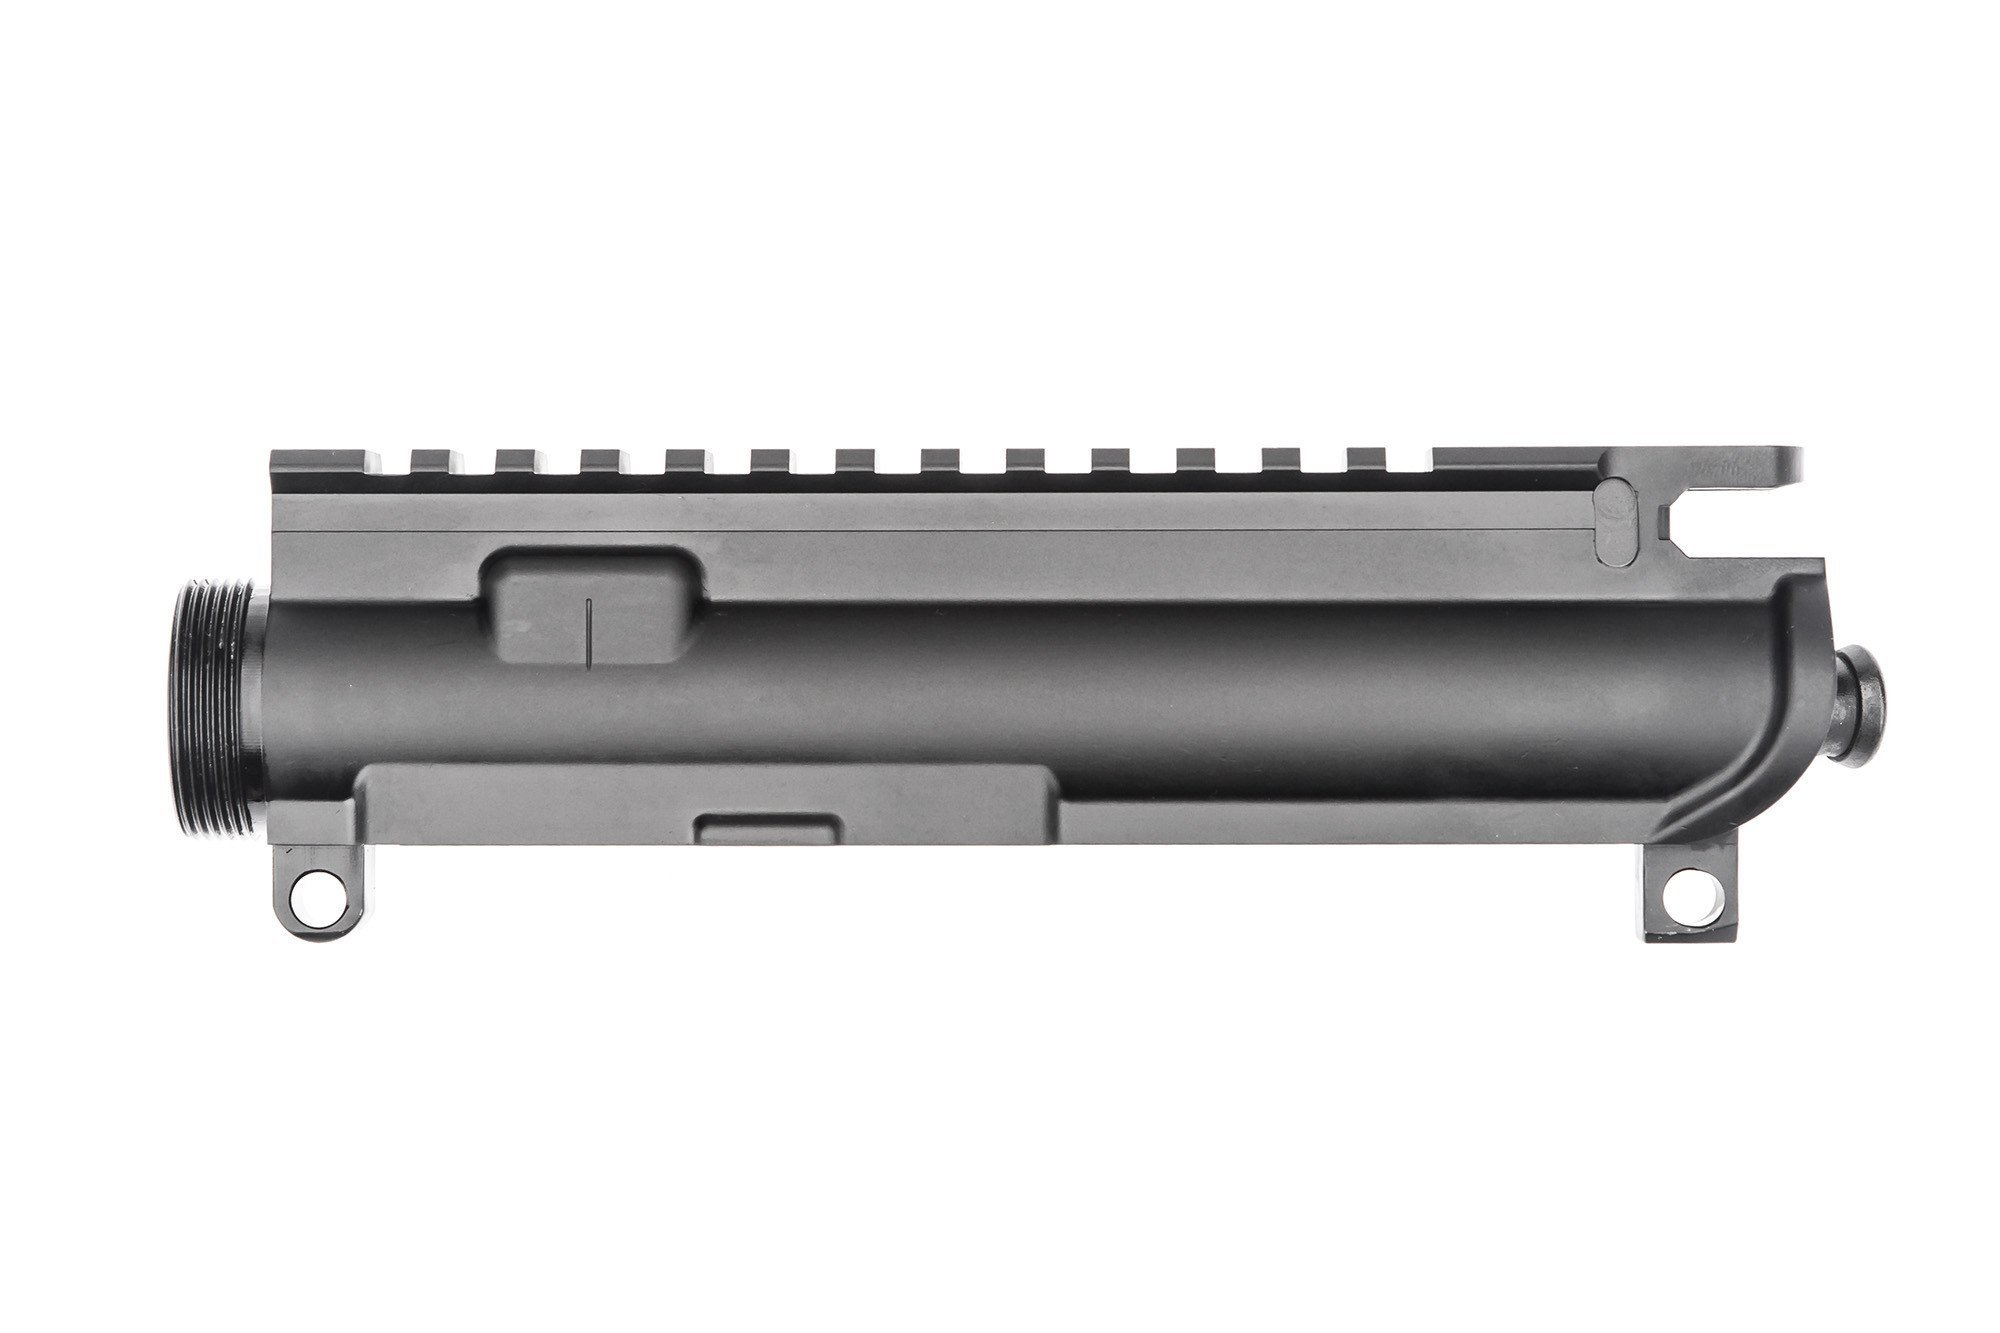 Spike's Tactical Forged M4/AR-15 Flat Top Upper Receiver